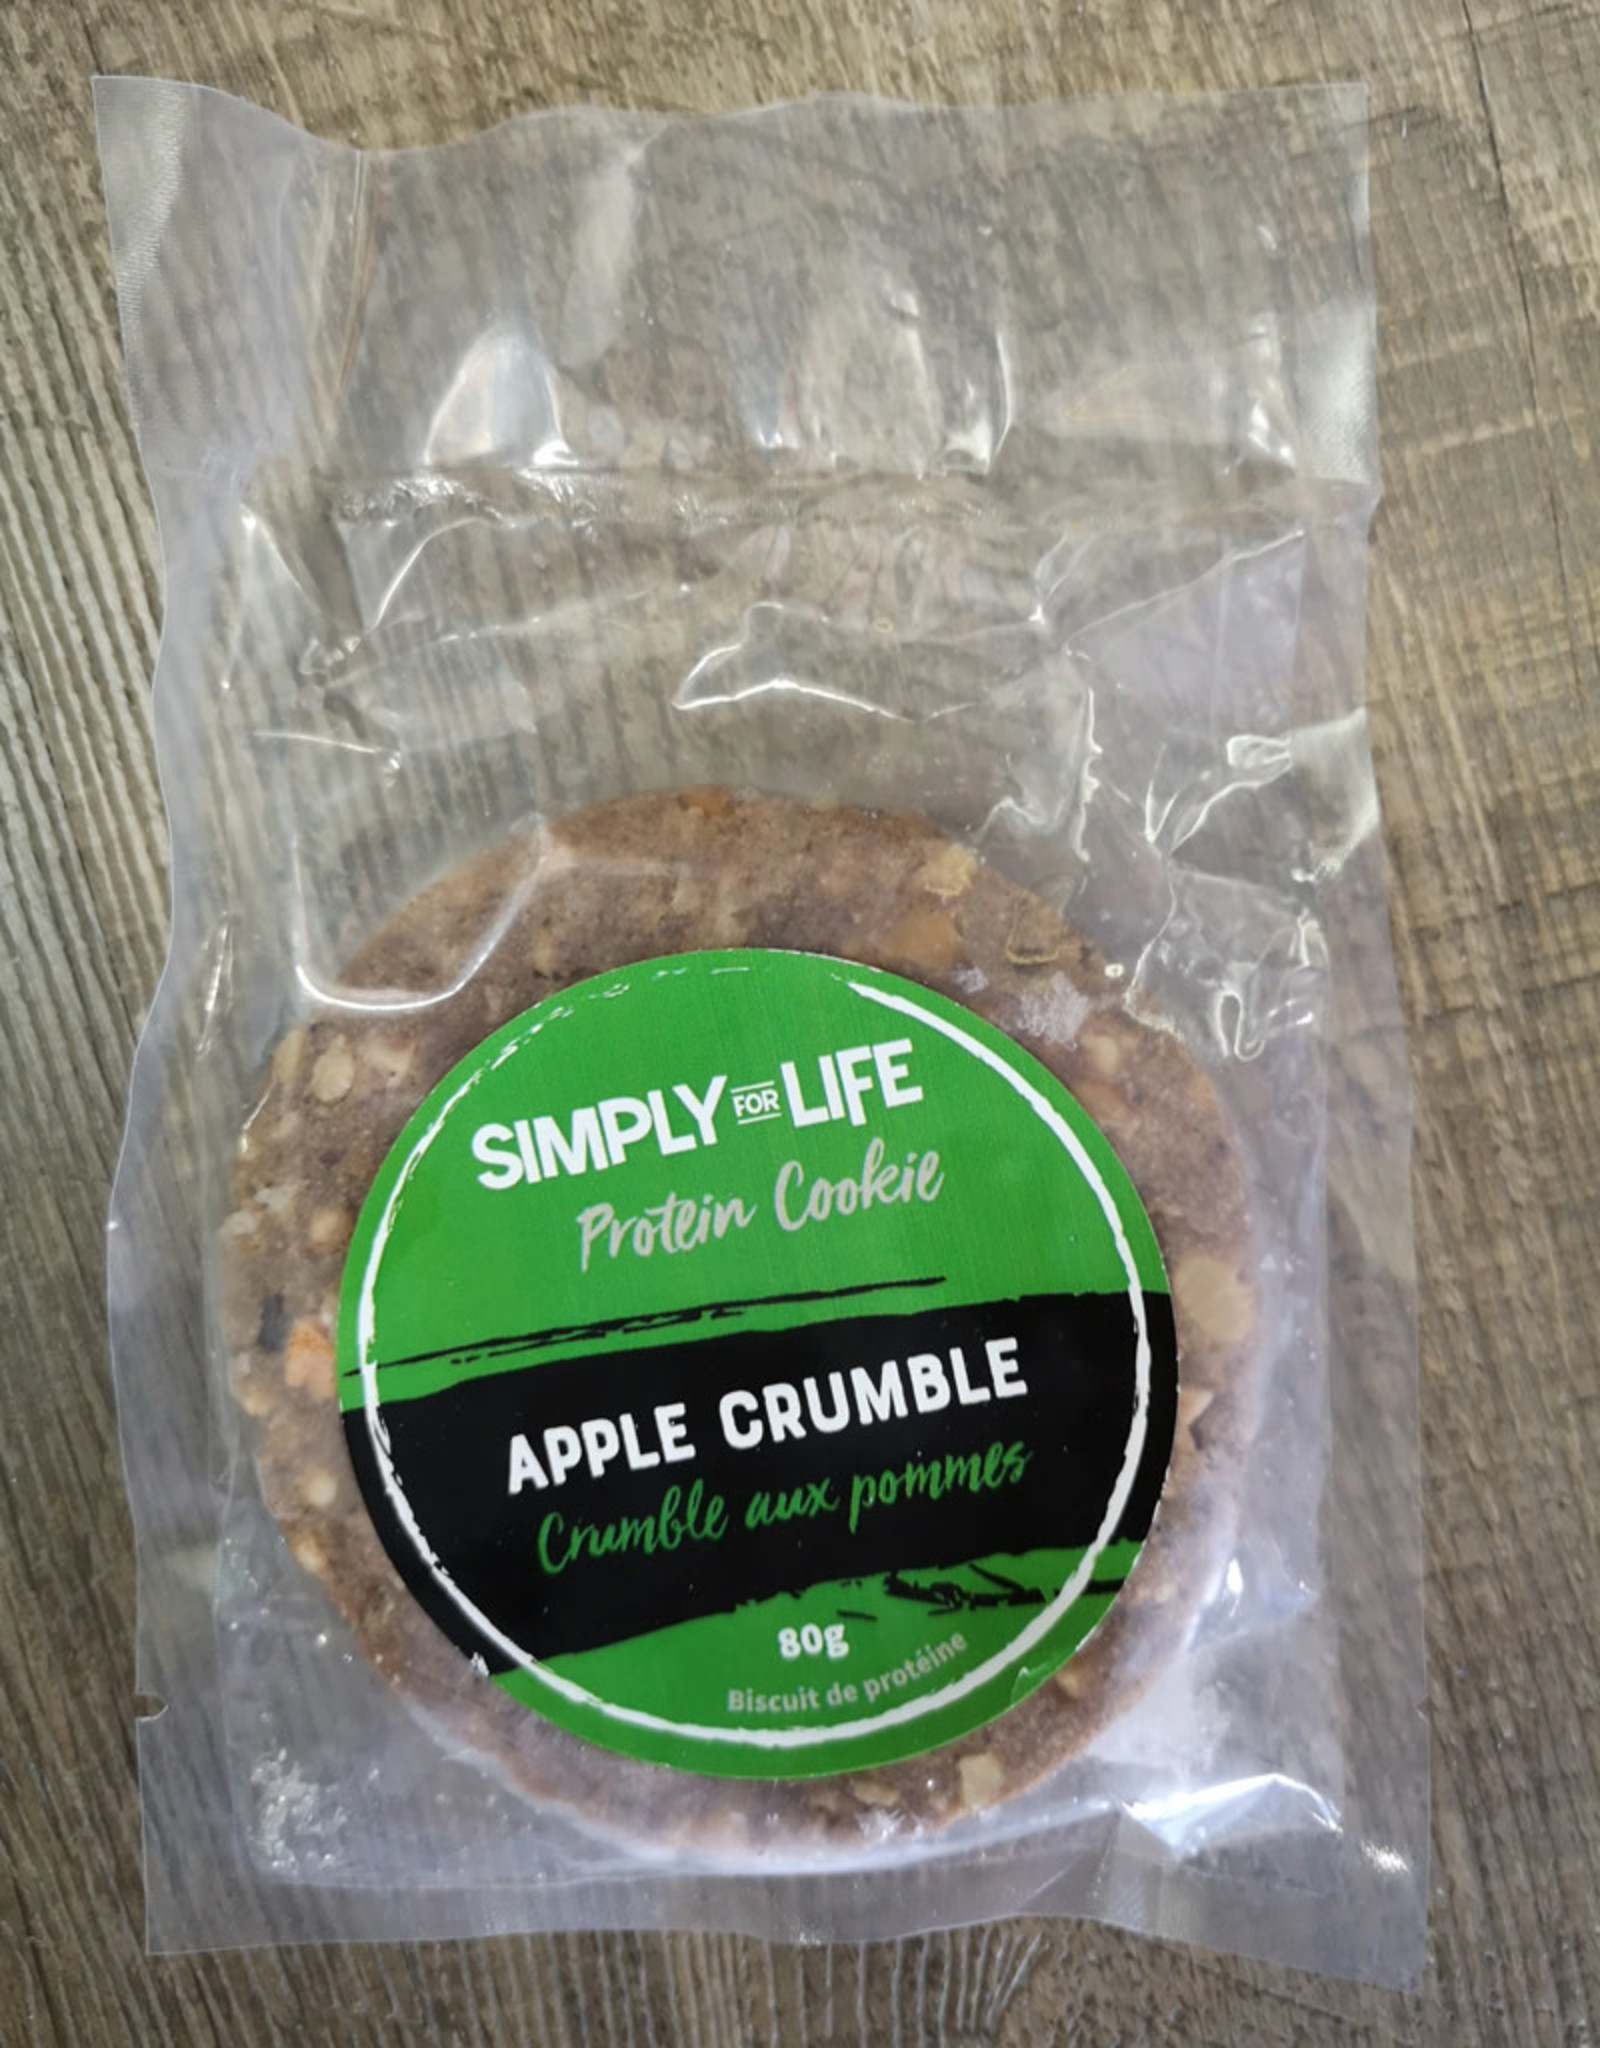 Simply For Life SFL - Protein Cookie, Apple Crumble